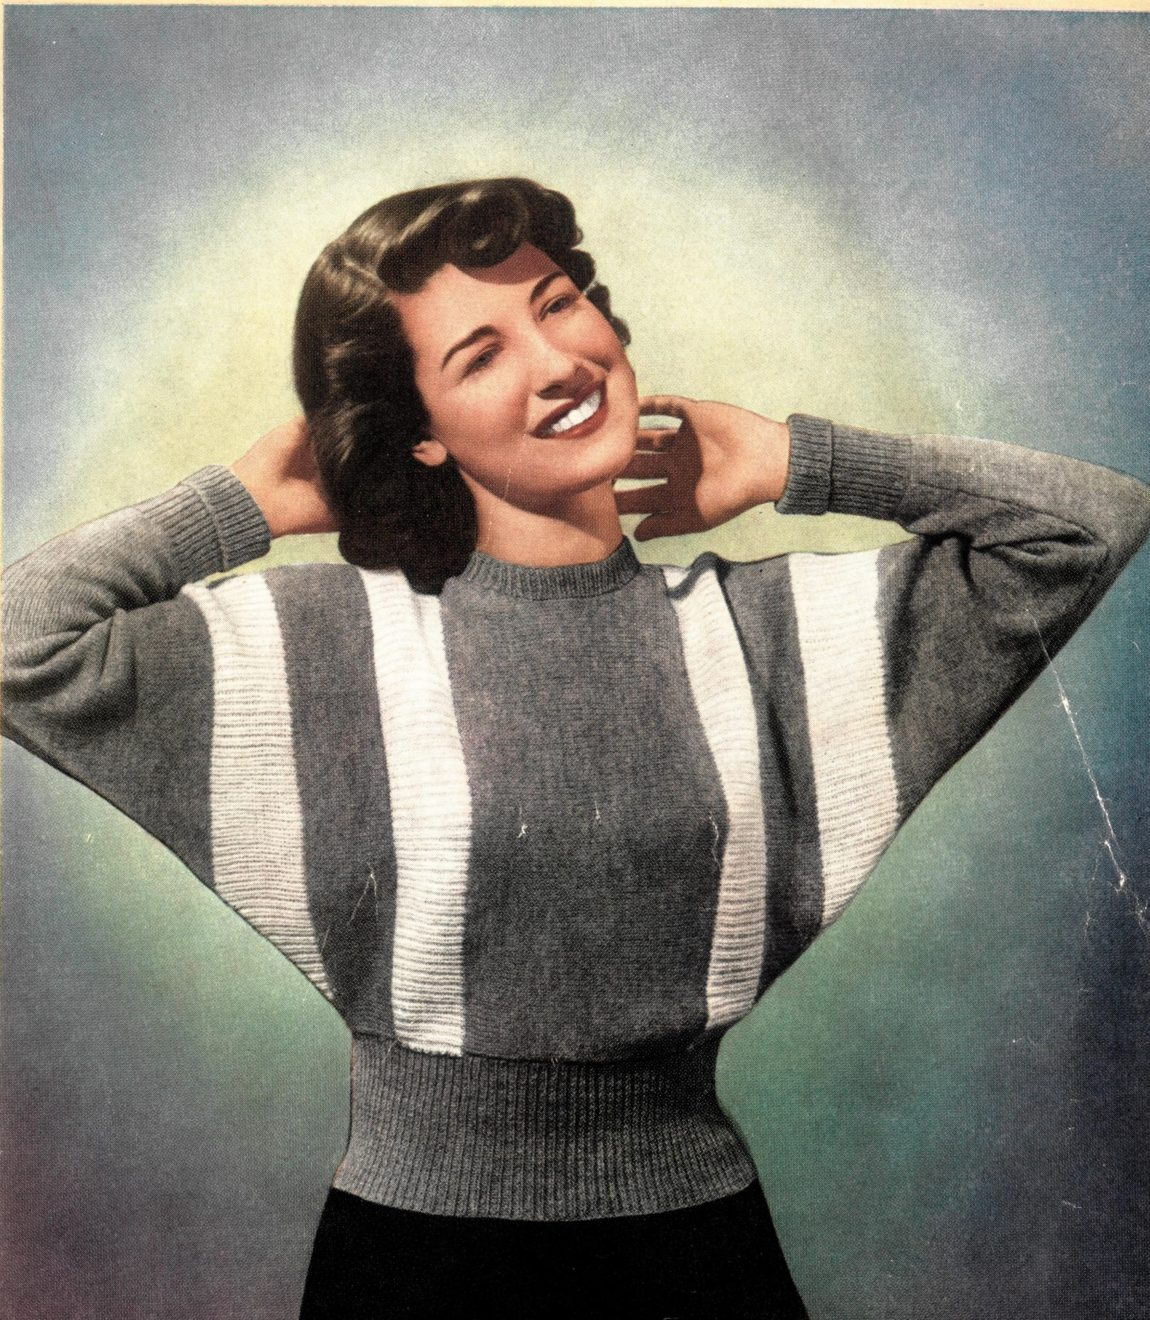 batwing raglan sweater jumper vintage knitting pattern marriners 69